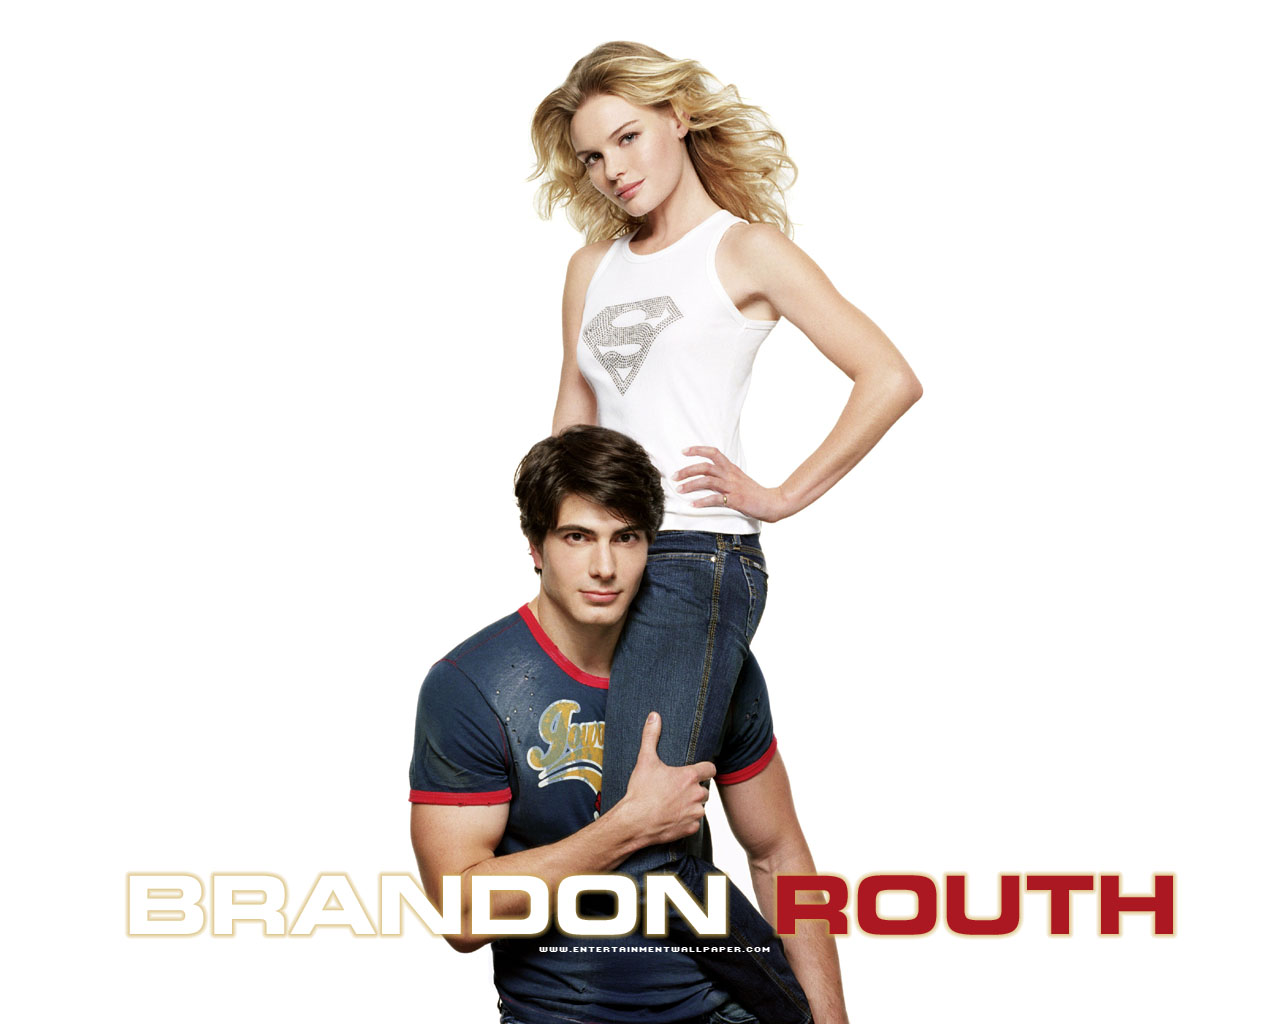 Brandon Routh   Brandon Routh Wallpaper 645005 1280x1024